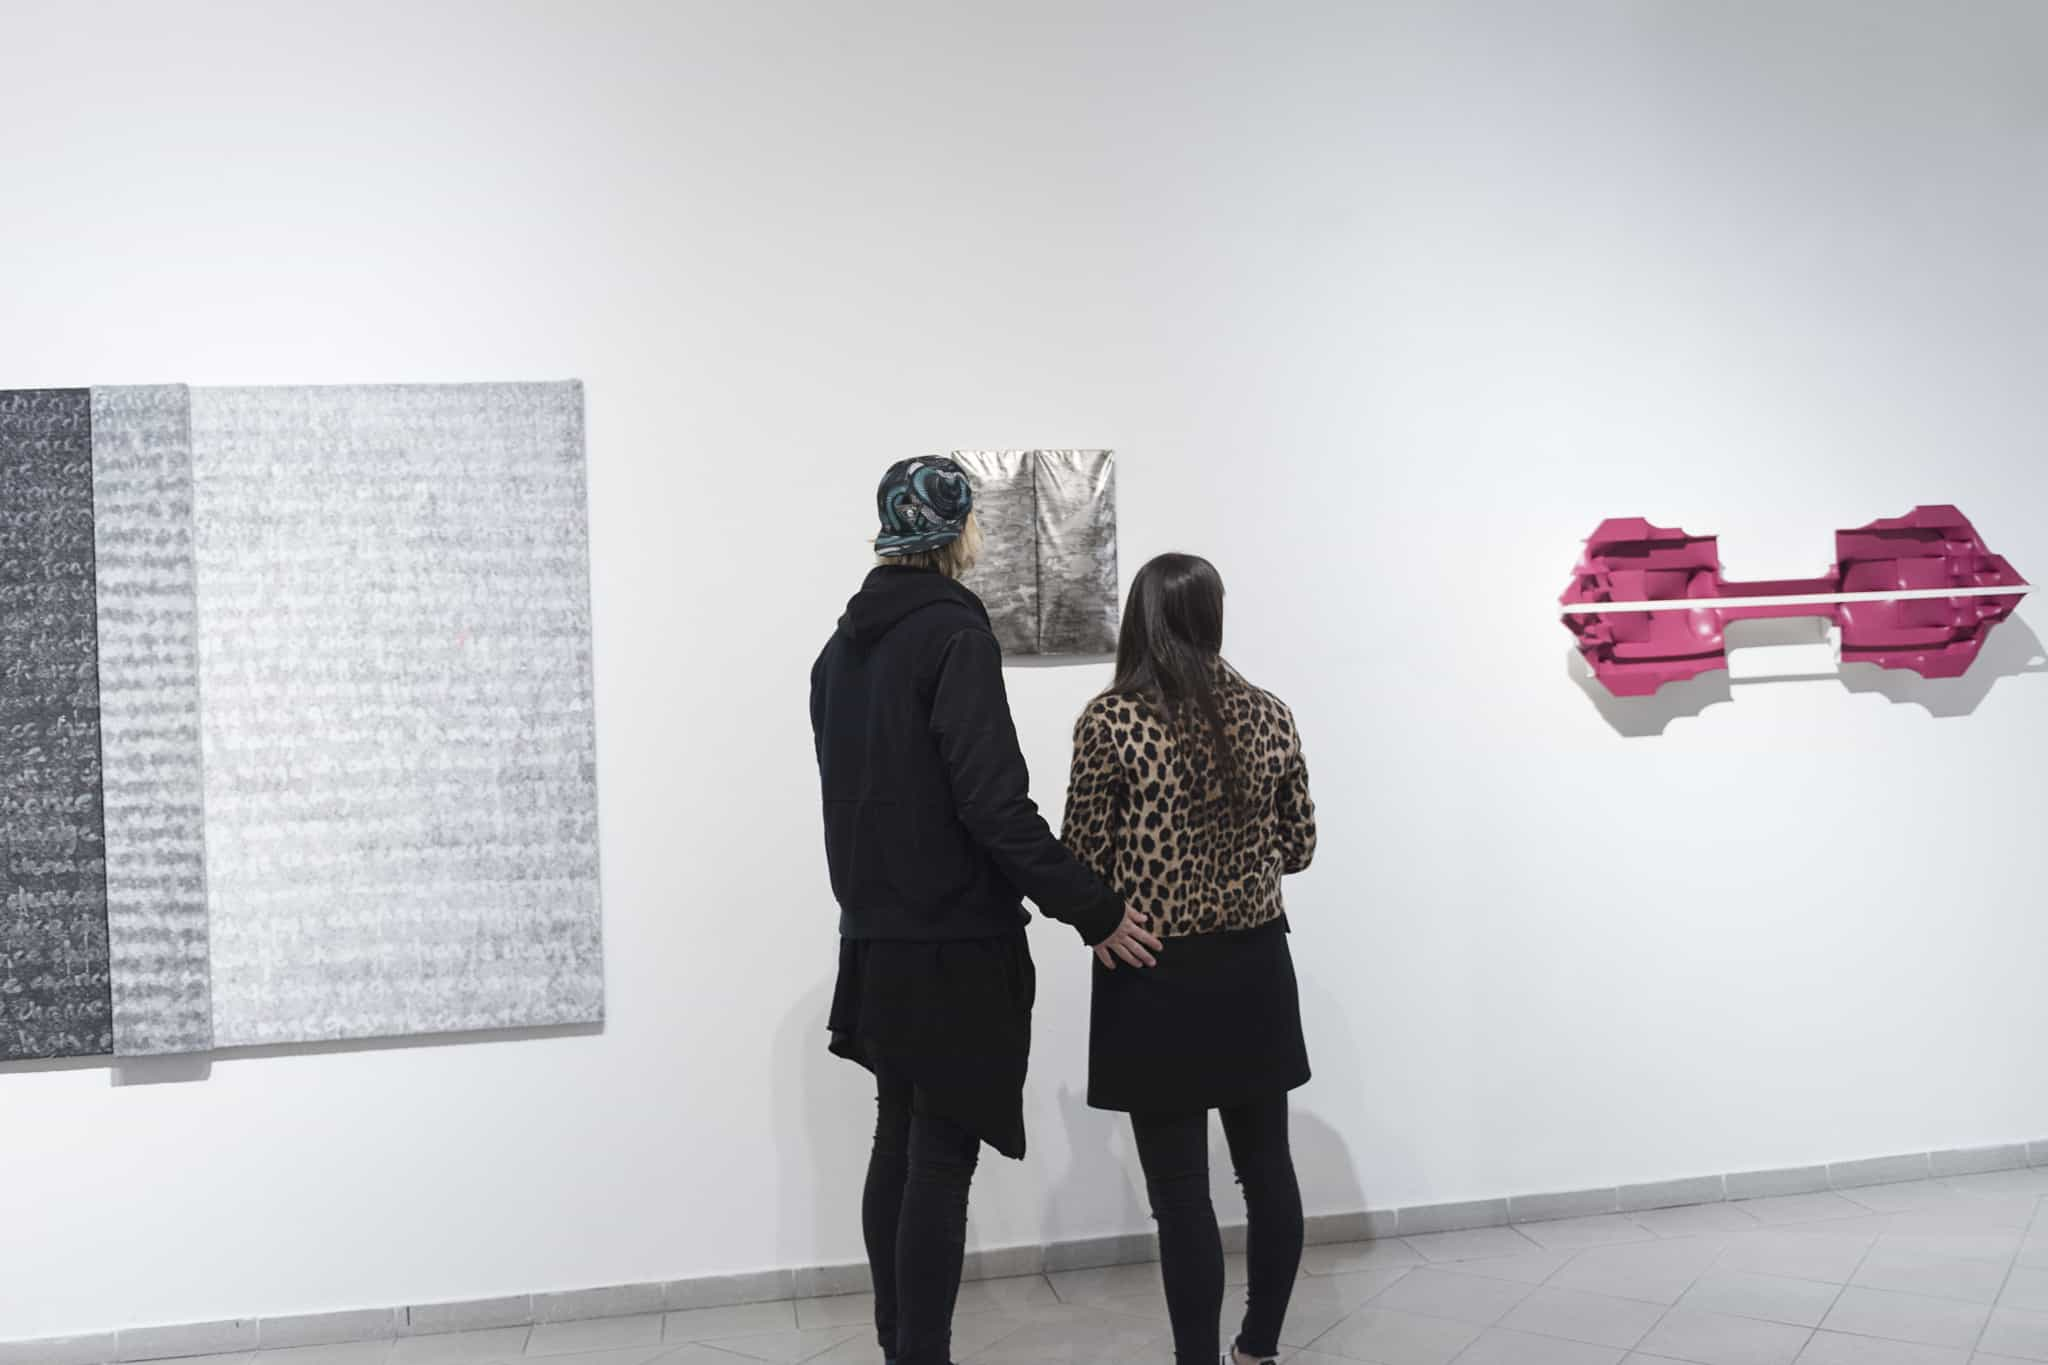 """Opening of the exhibition """"Transitions"""", artists: Alicja Gaskon and Árpád Forgó, curator: Tomasz Piars, Platan Gallery, March 2016, Budapest"""